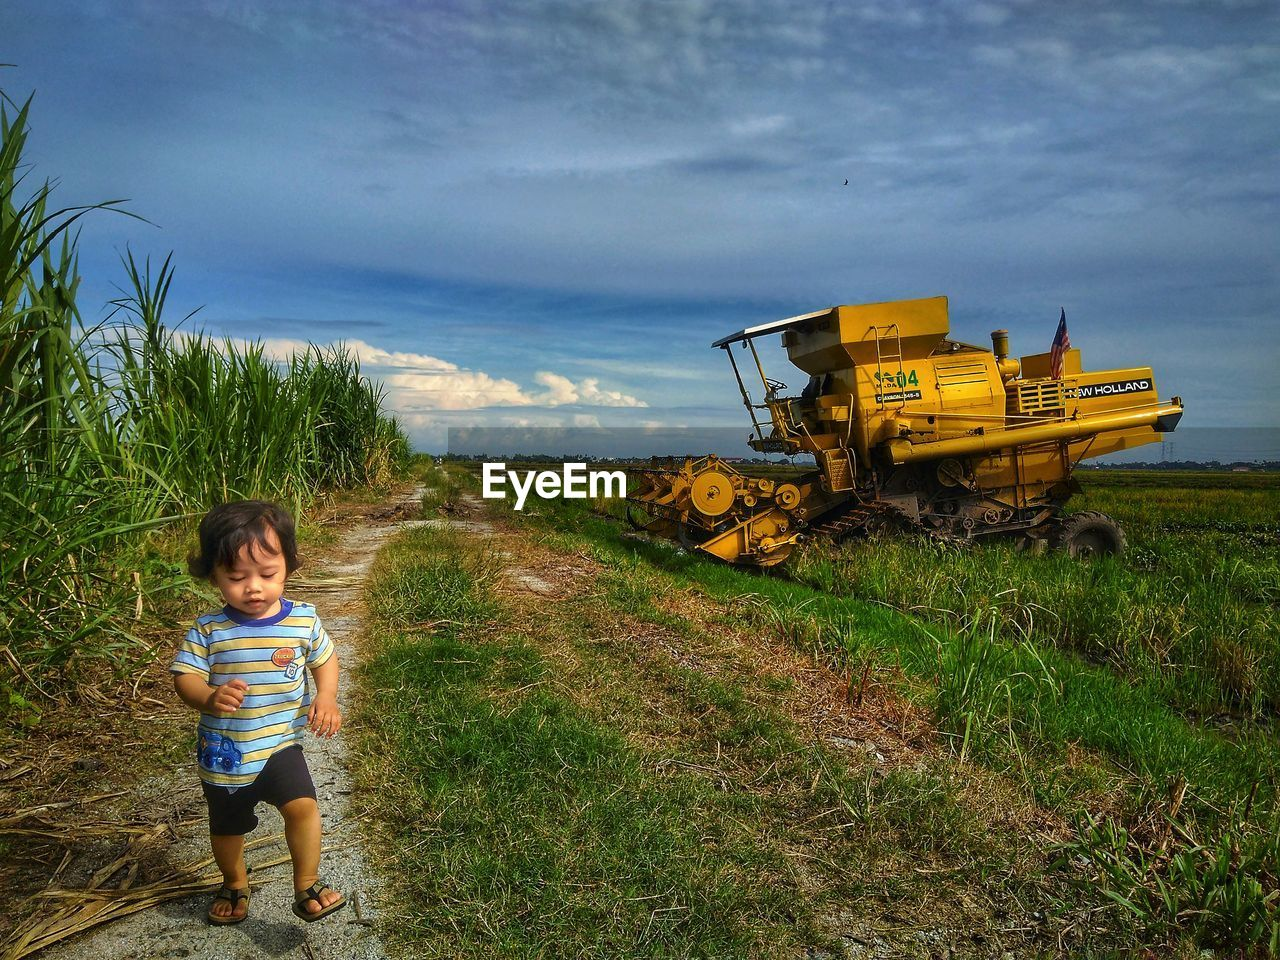 field, real people, grass, one person, sky, agriculture, growth, nature, landscape, cloud - sky, outdoors, childhood, girls, rural scene, full length, day, people